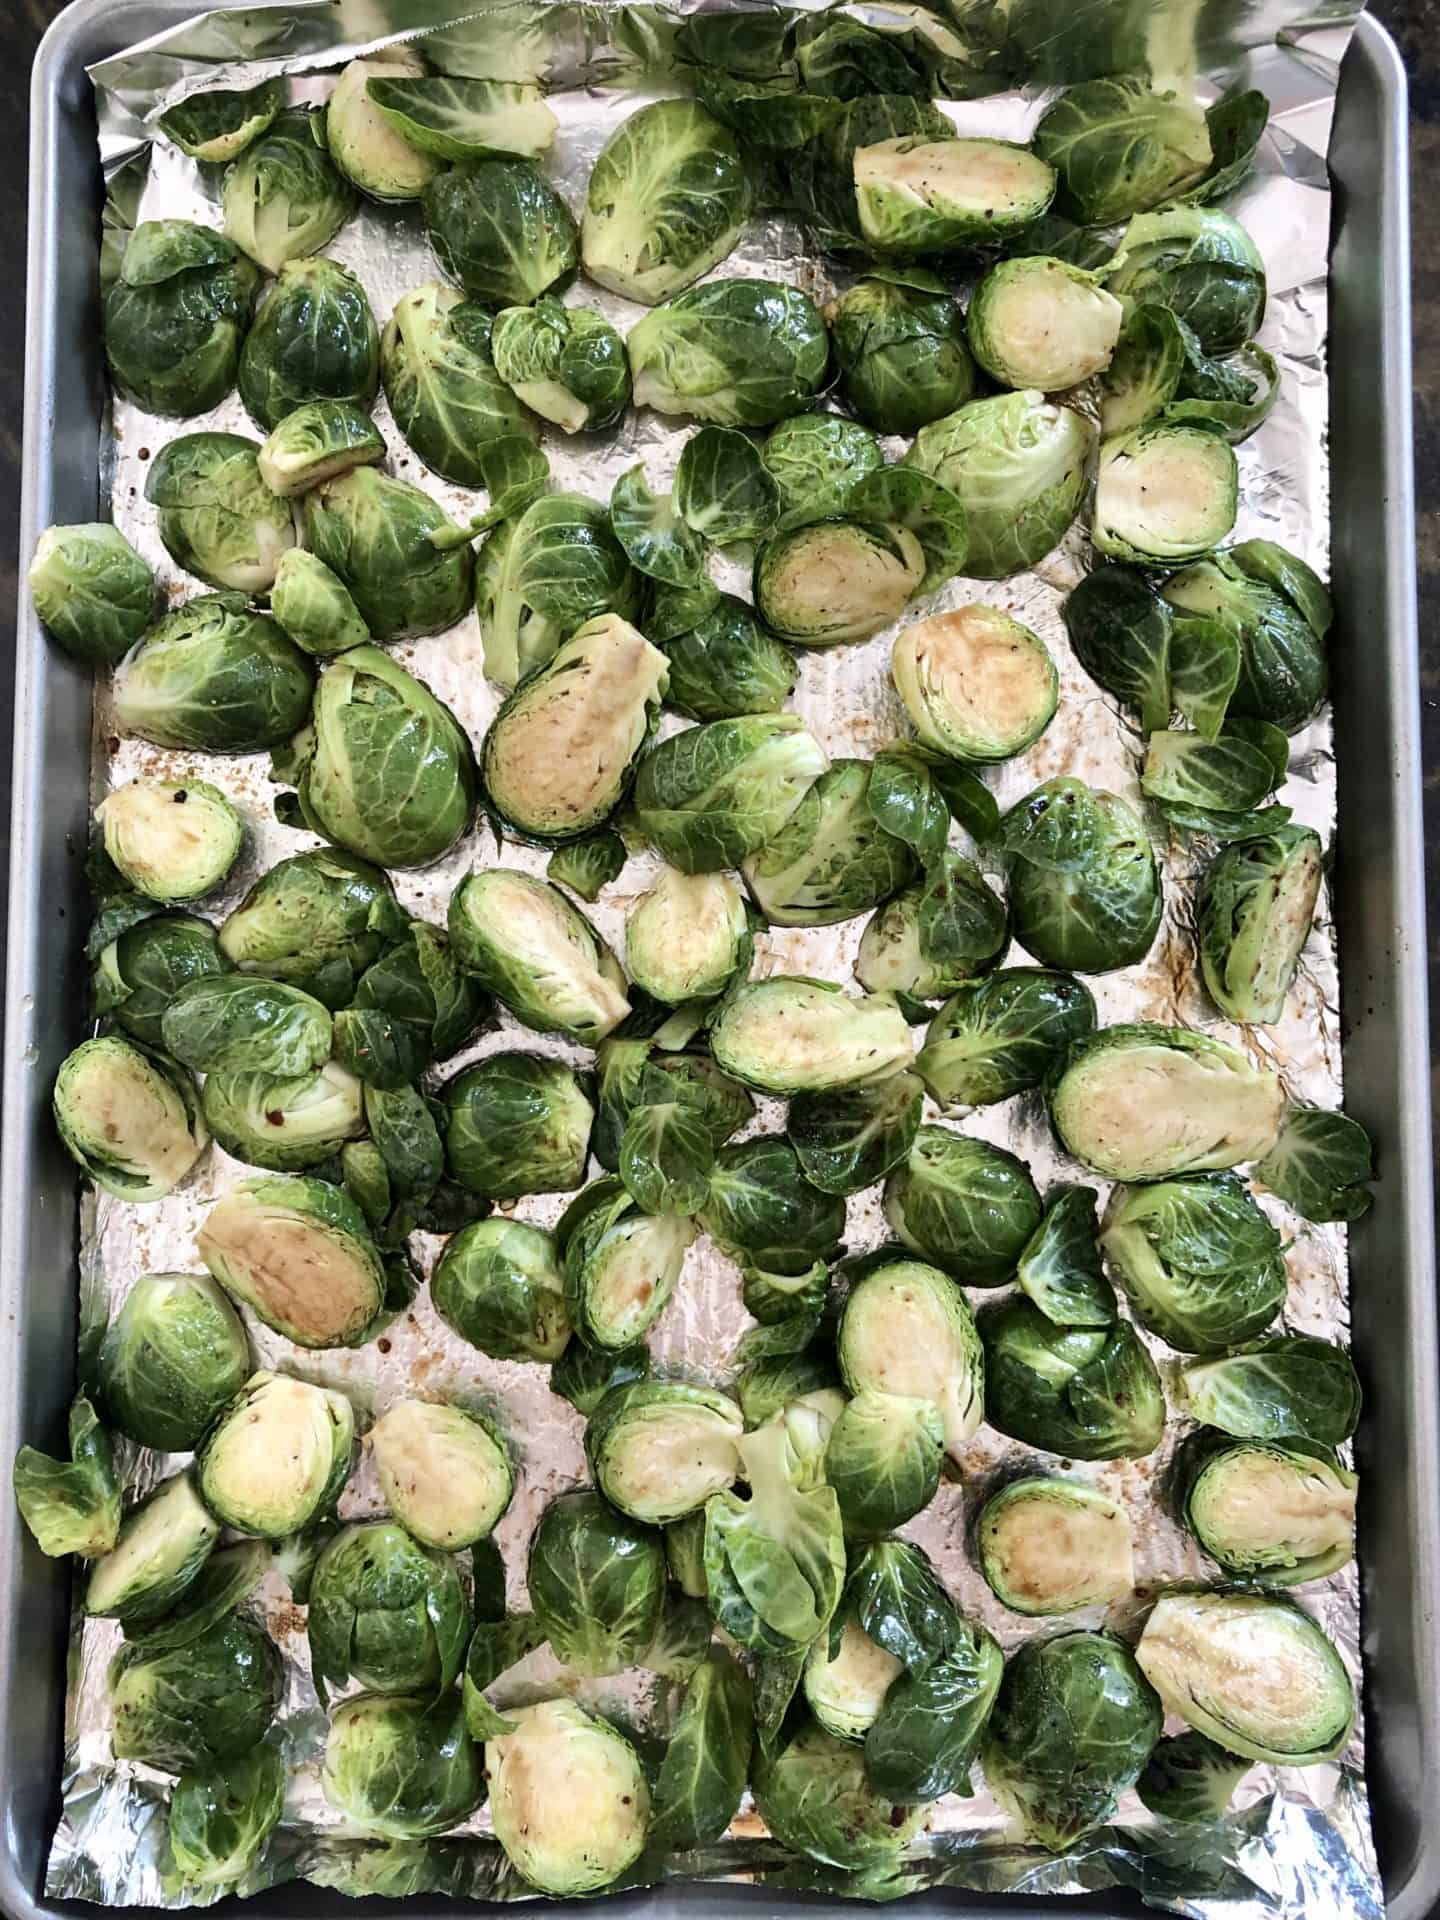 Brussels sprouts on baking sheet ready to be roasted